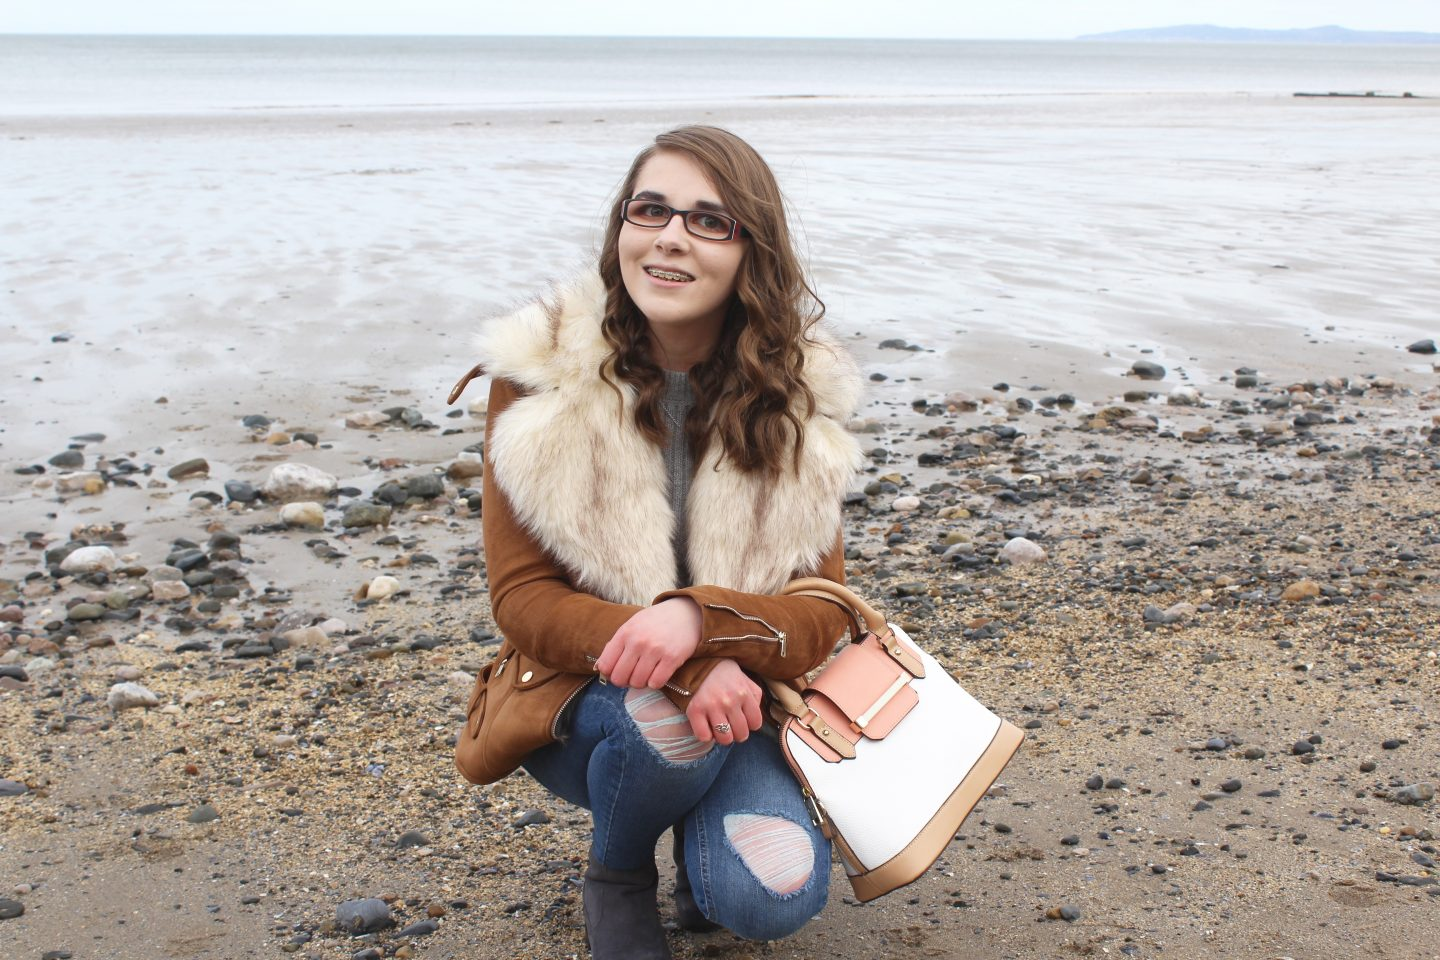 A photo of Elin on the beach, she is kneeling down and smiling at the camera